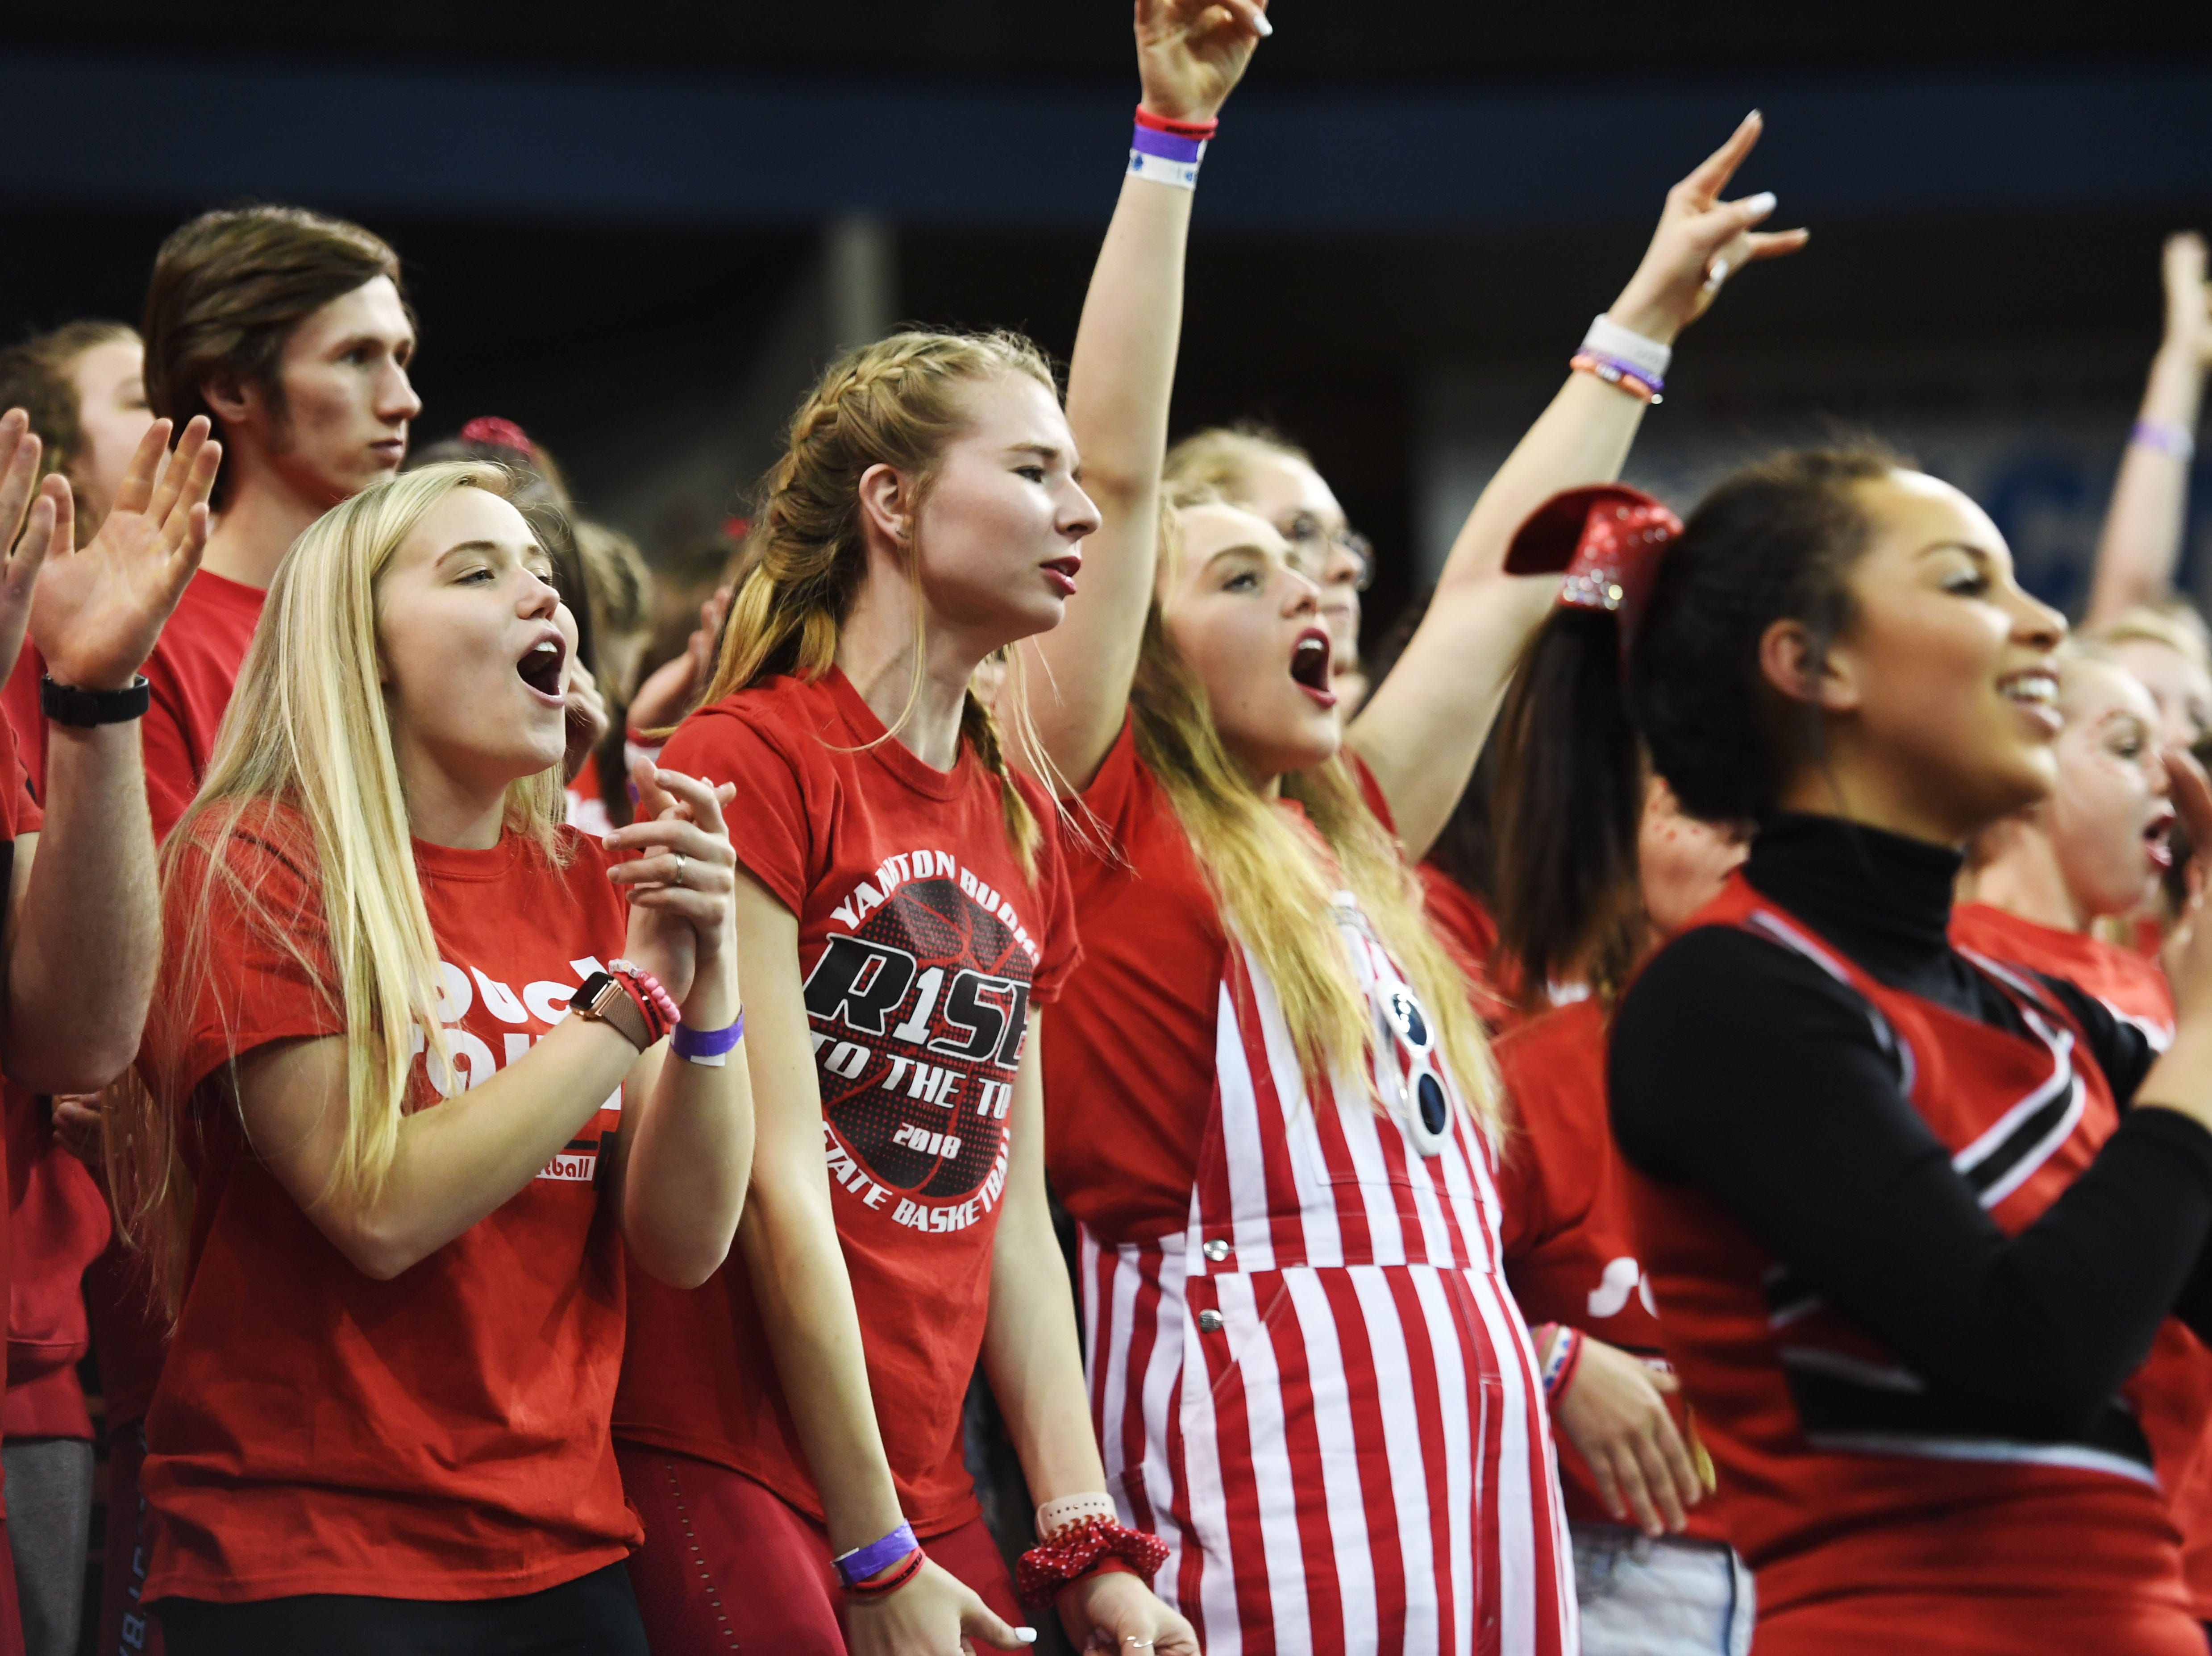 Yankton's student section during the game against Huron in the Class AA quarterfinals Thursday, March 14, in Rapid City.